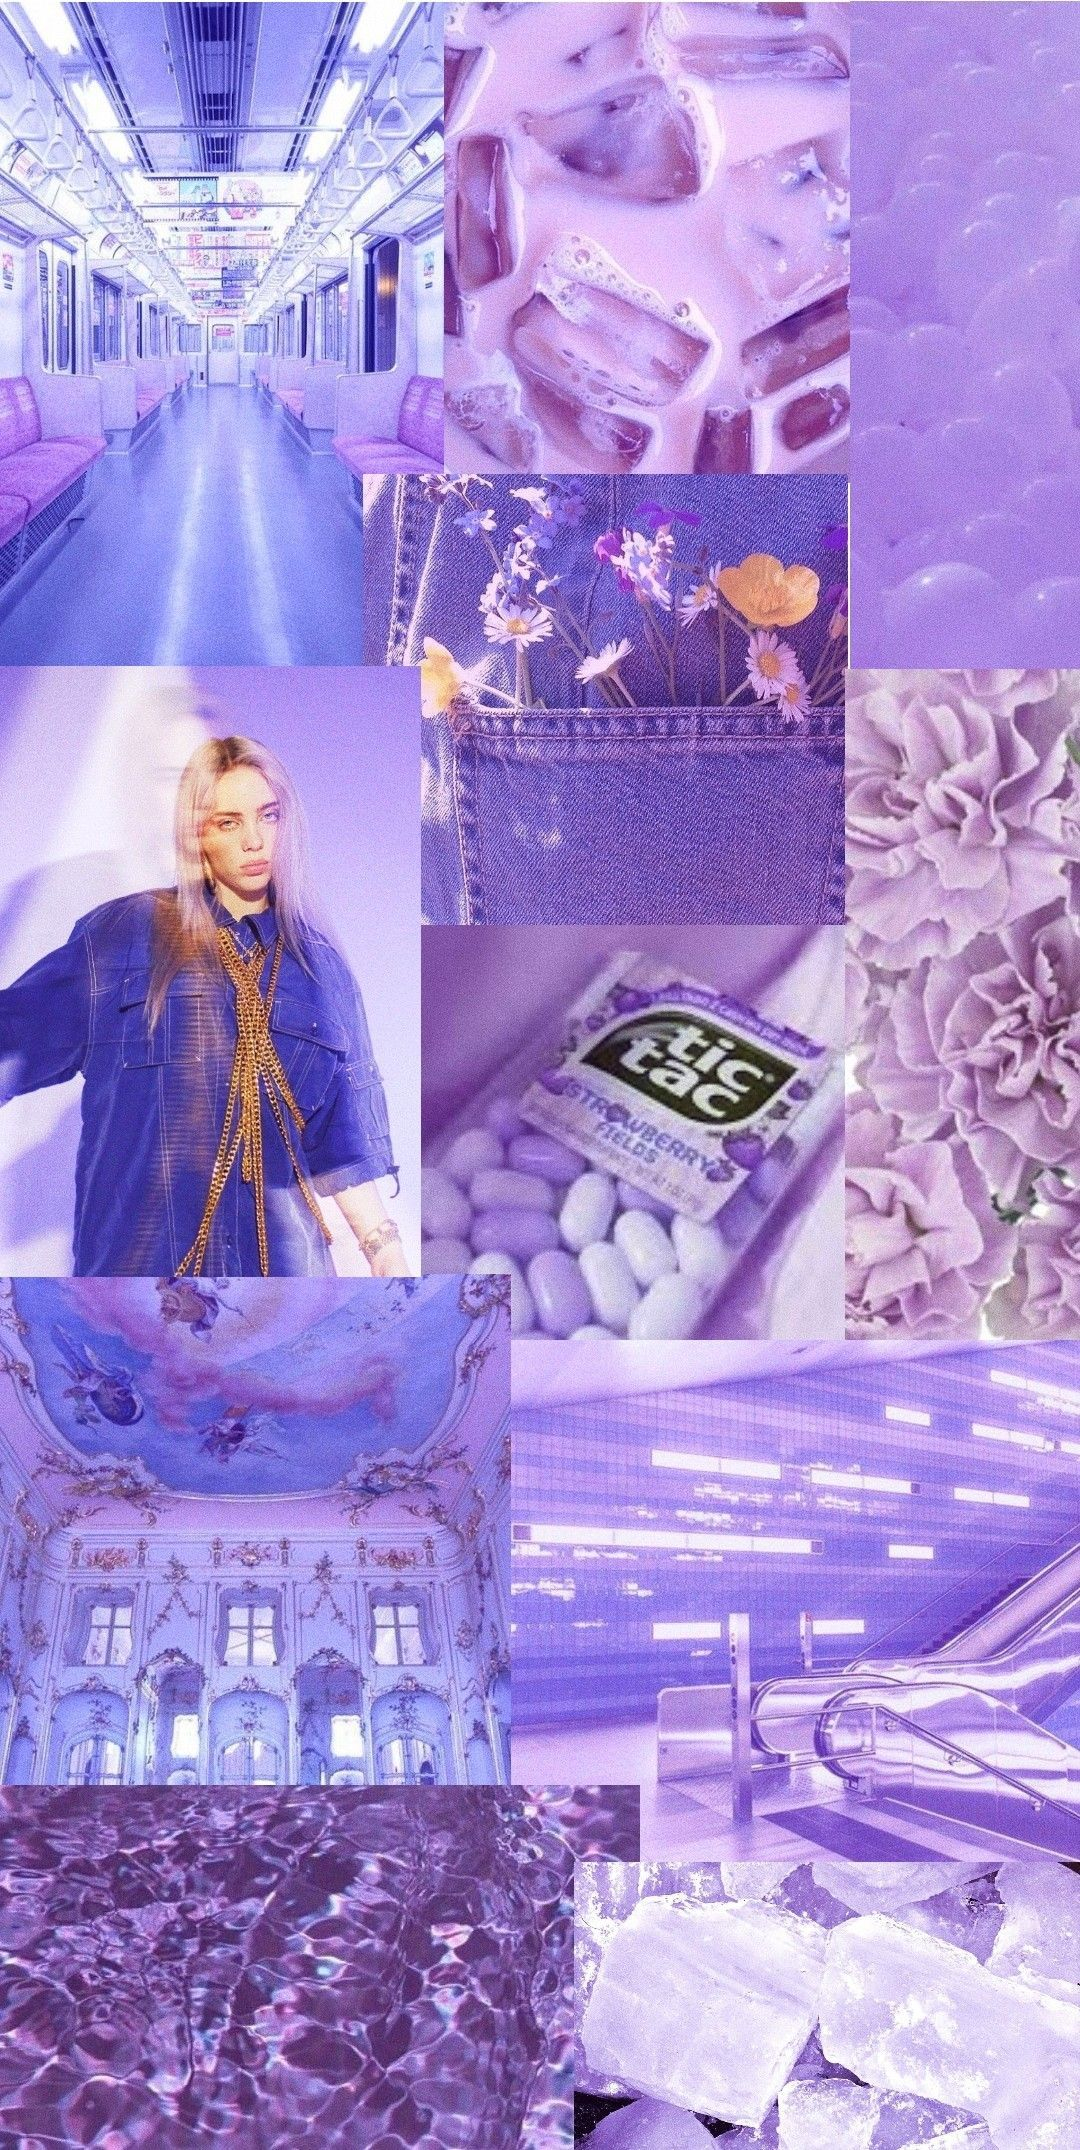 iRxRxbo pastel light purple aesthetic billie eilish wallpaper aesthetic